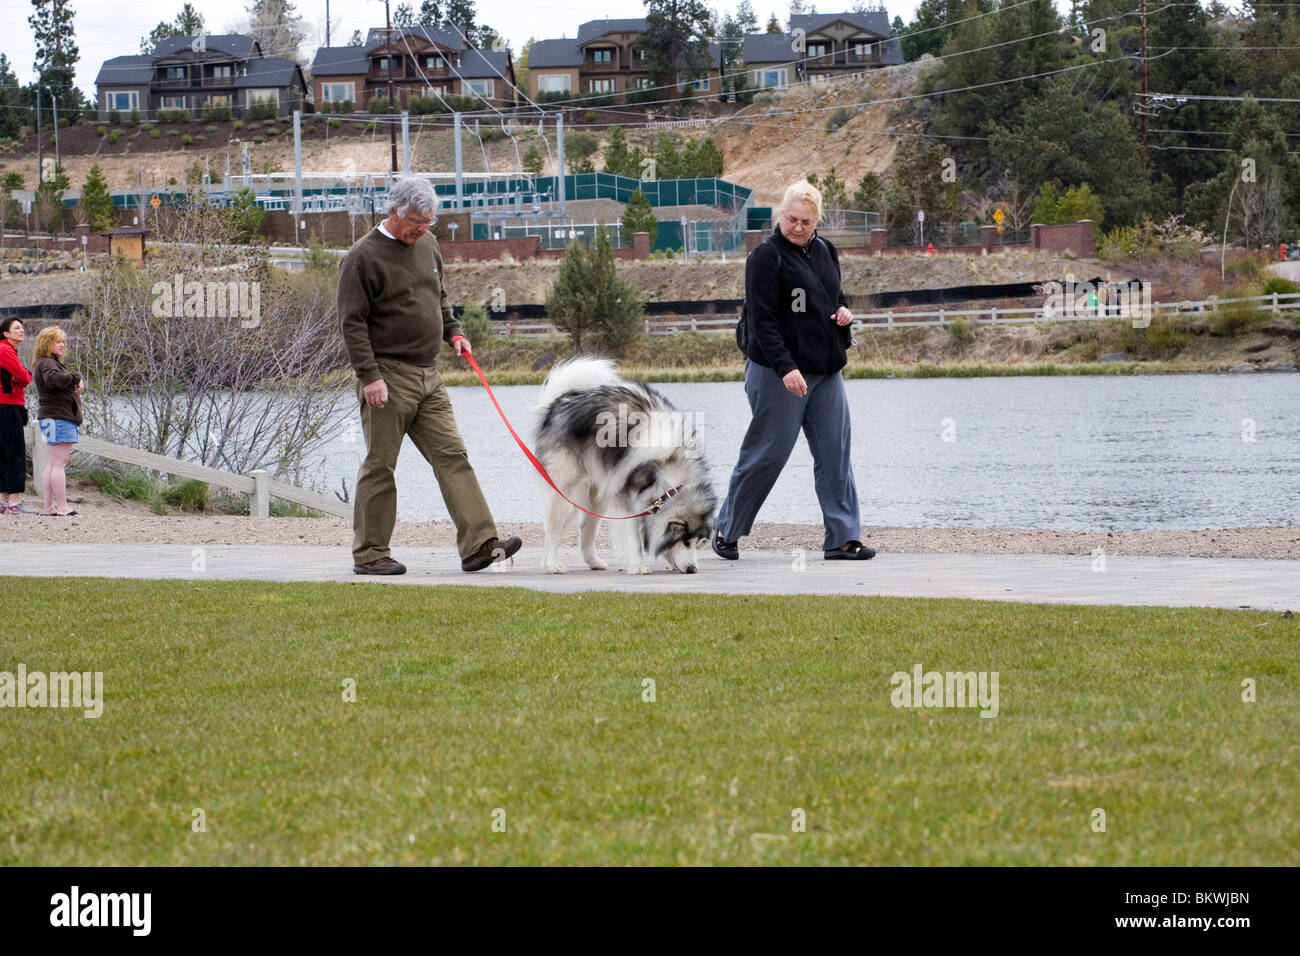 A senior citizen couple walk their large dog in a city park - Stock Image